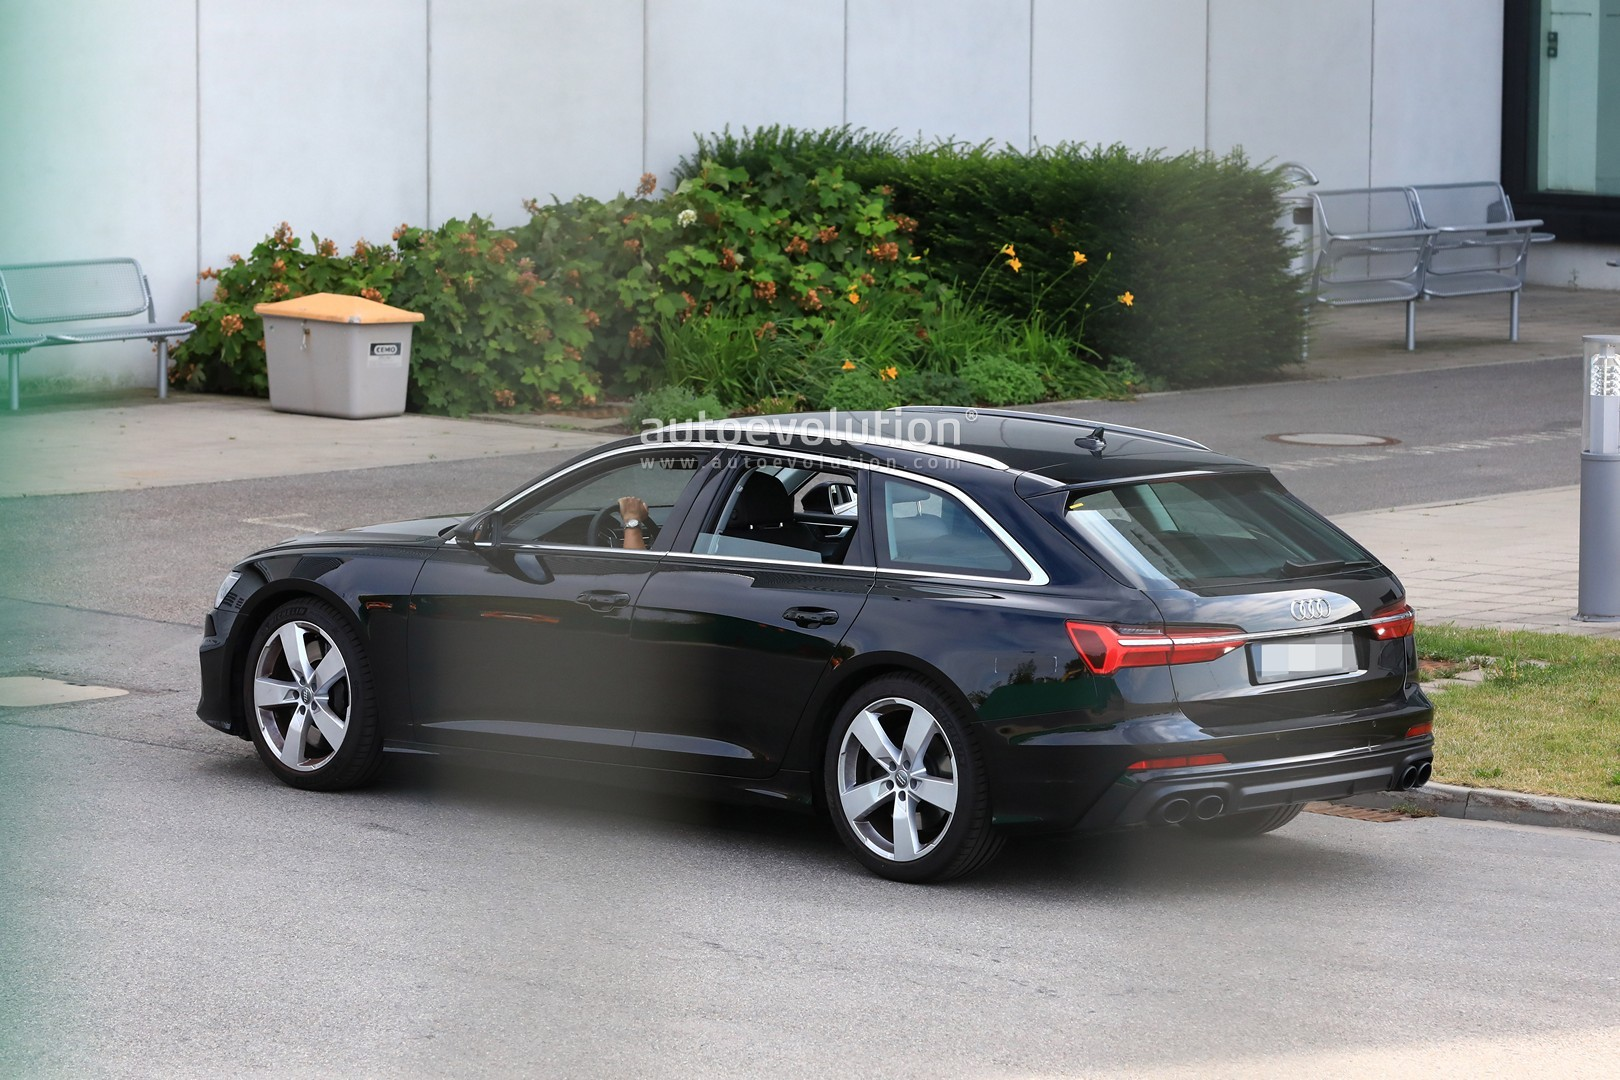 2020 Audi S6 Avant Spied With No Camo Looks Very Understated Autoevolution